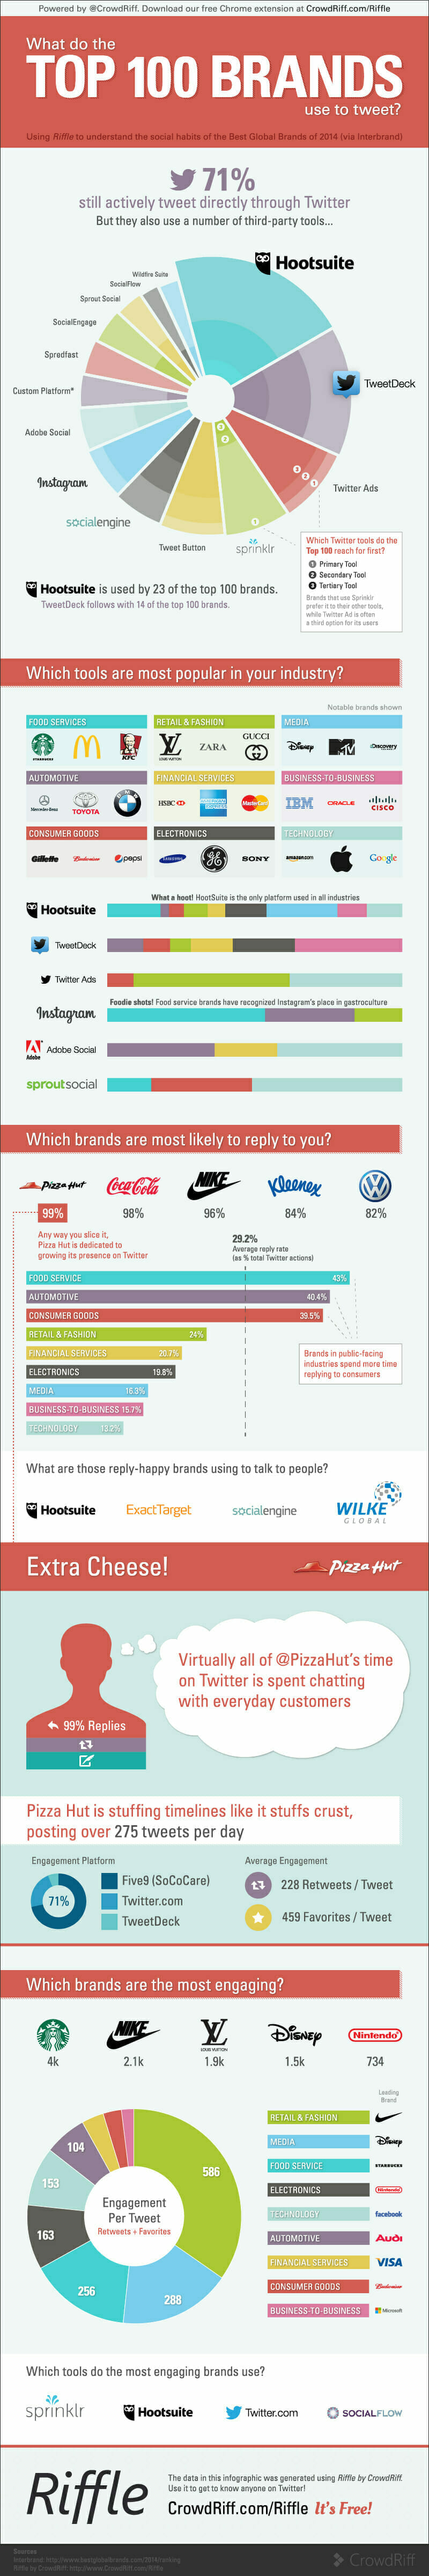 Riffle-Top100Brands-Infographic-oct23